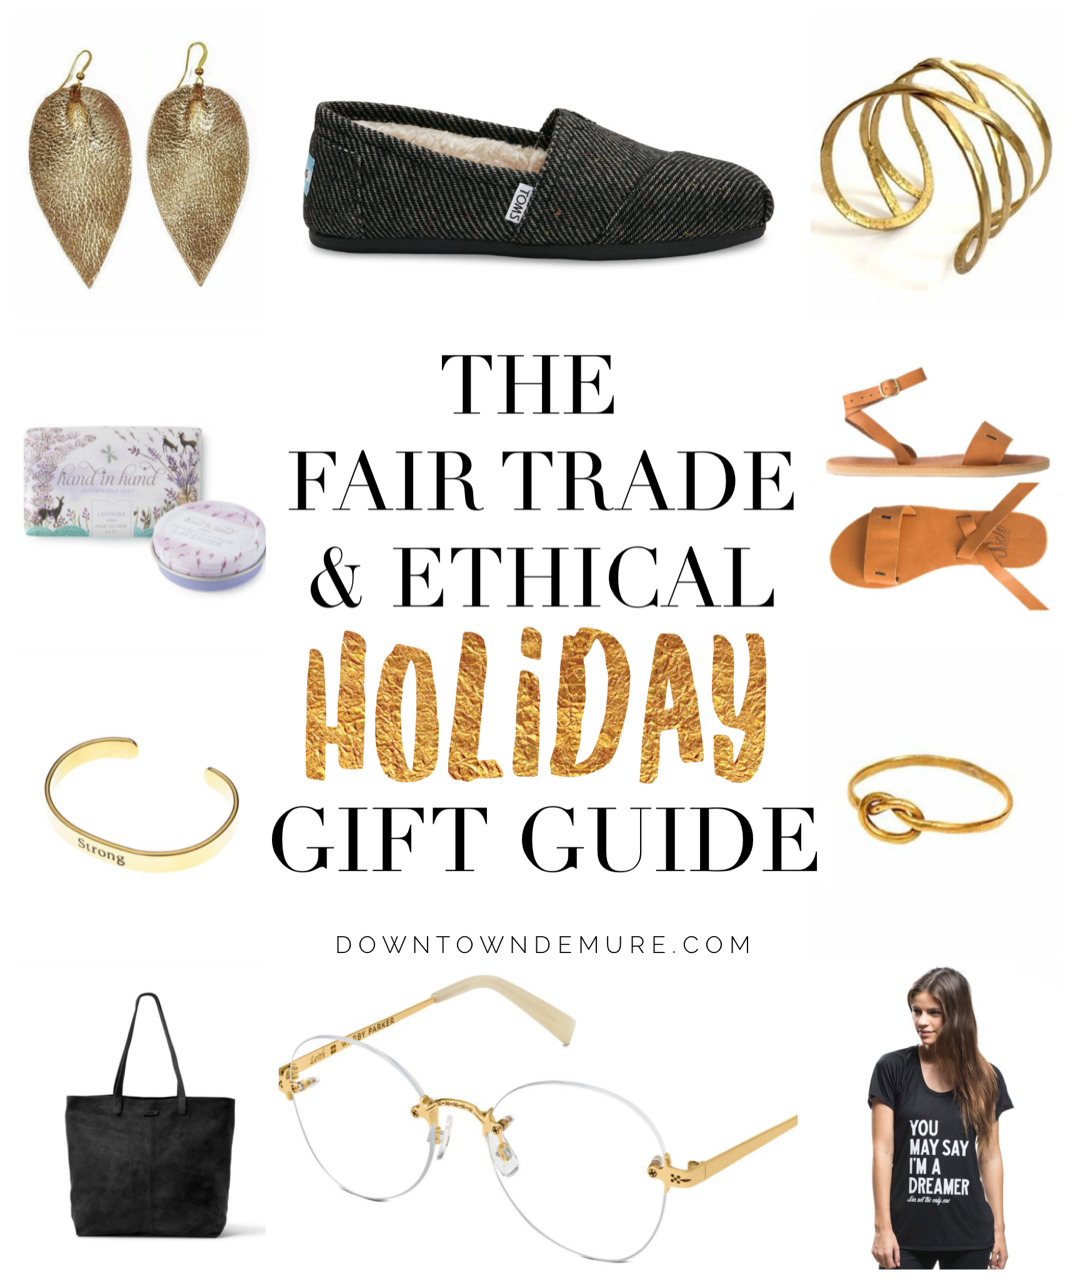 ethical-and-fair-trade-holiday-gift-guide-from-downtown-demure-com